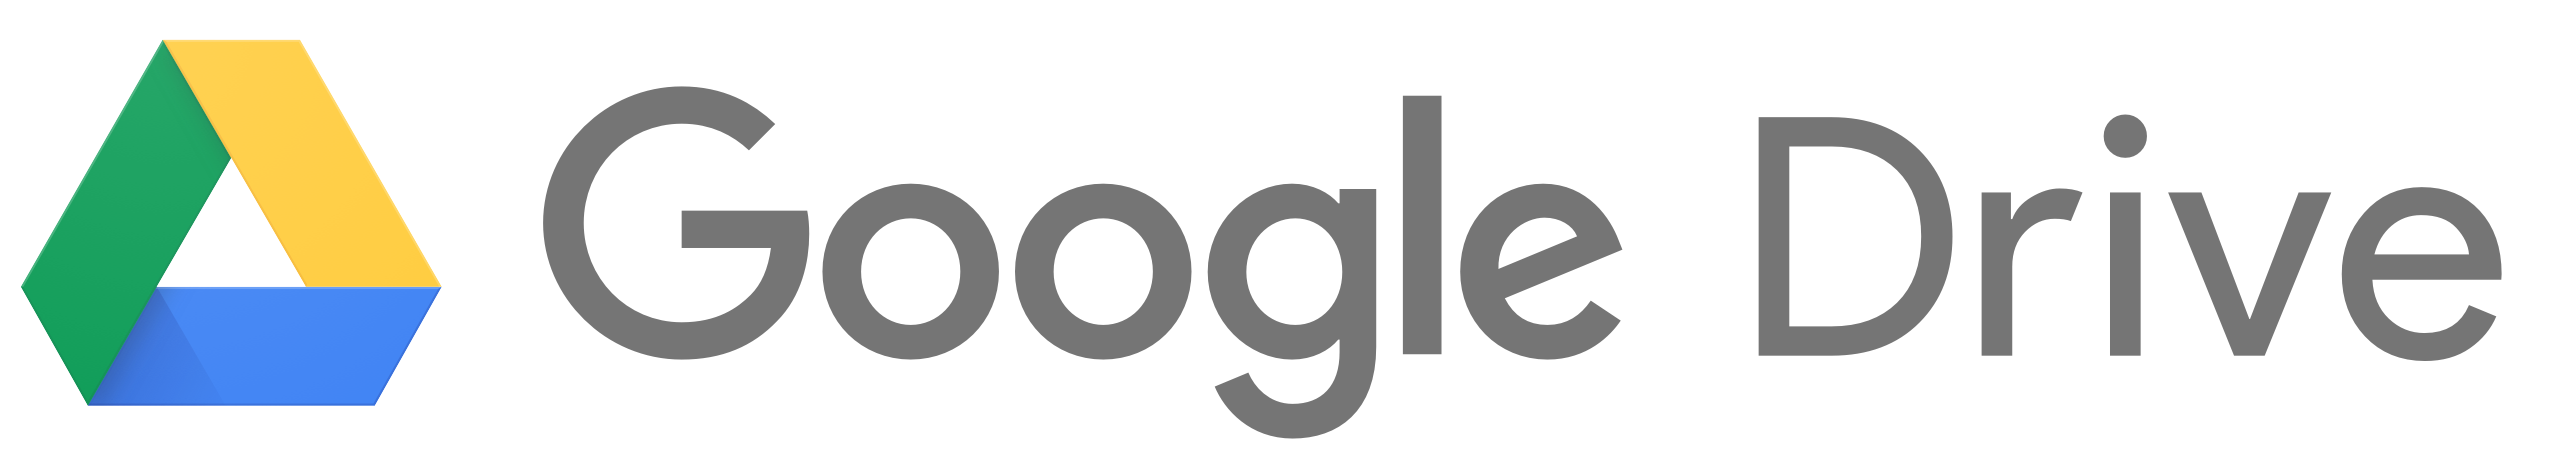 Google Drive Logo and Icon